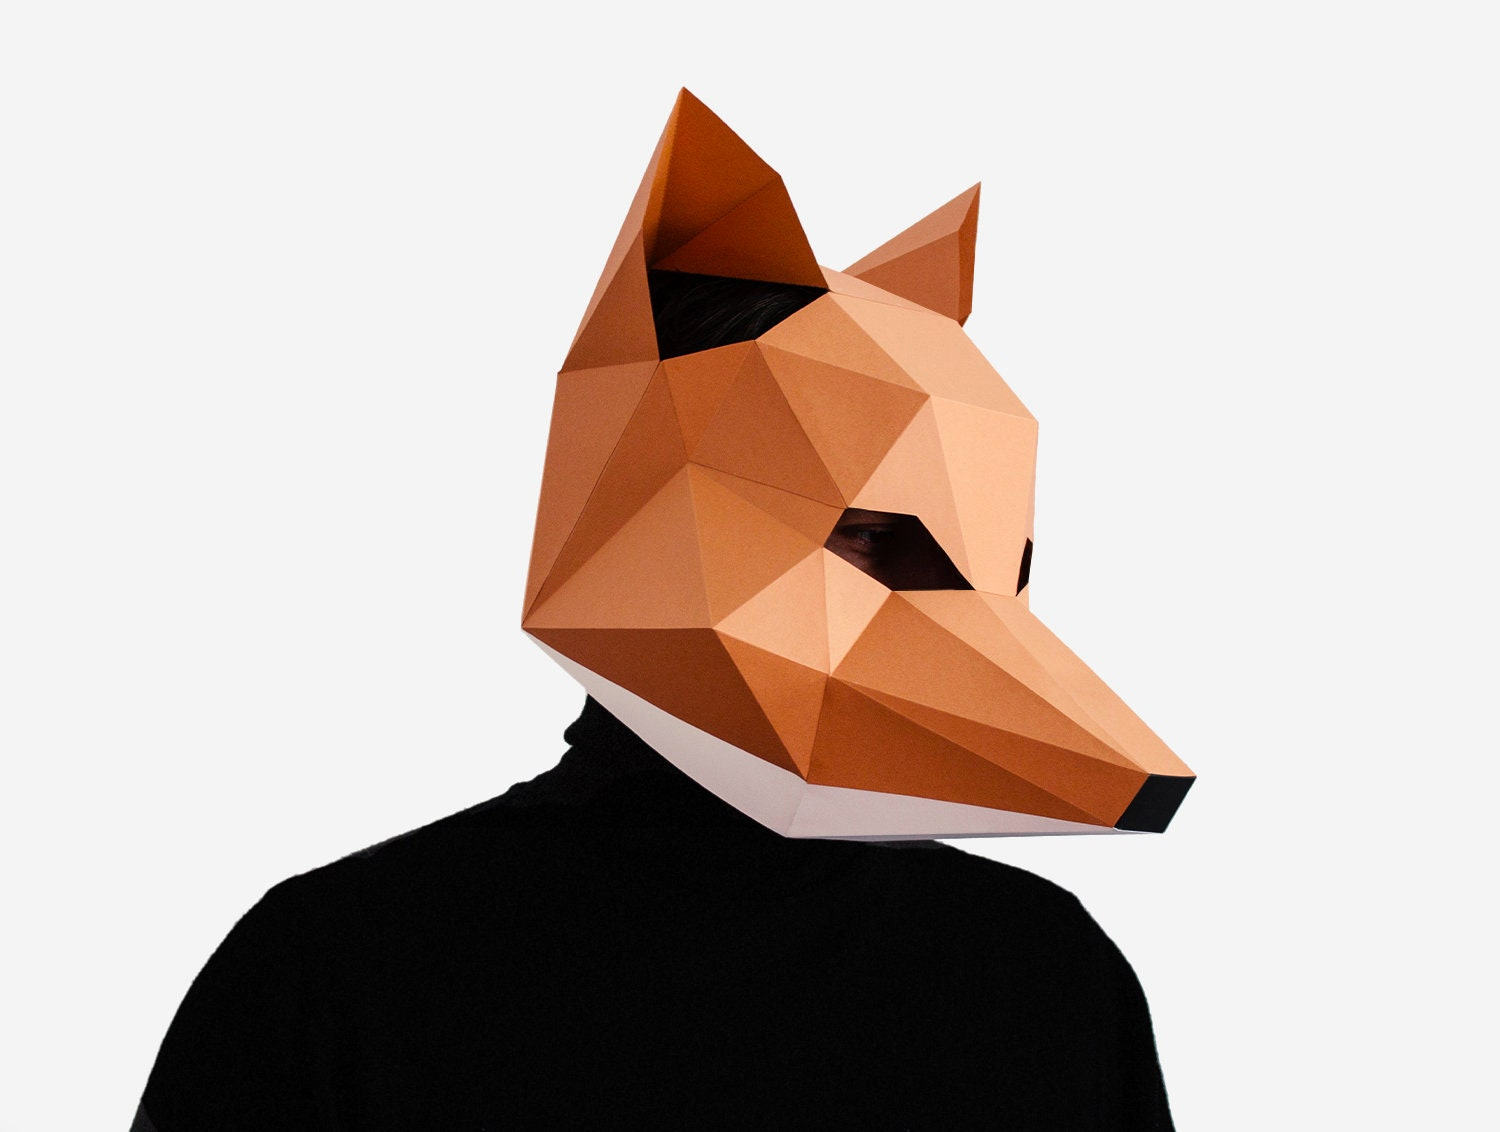 image relating to Fox Mask Printable referred to as Fox Mask, Do it yourself Printable Animal Mask, Papercraft Template, Prompt Pdf Down load, 3D Lower Poly Masks, Origami Fox, Lapa Studios